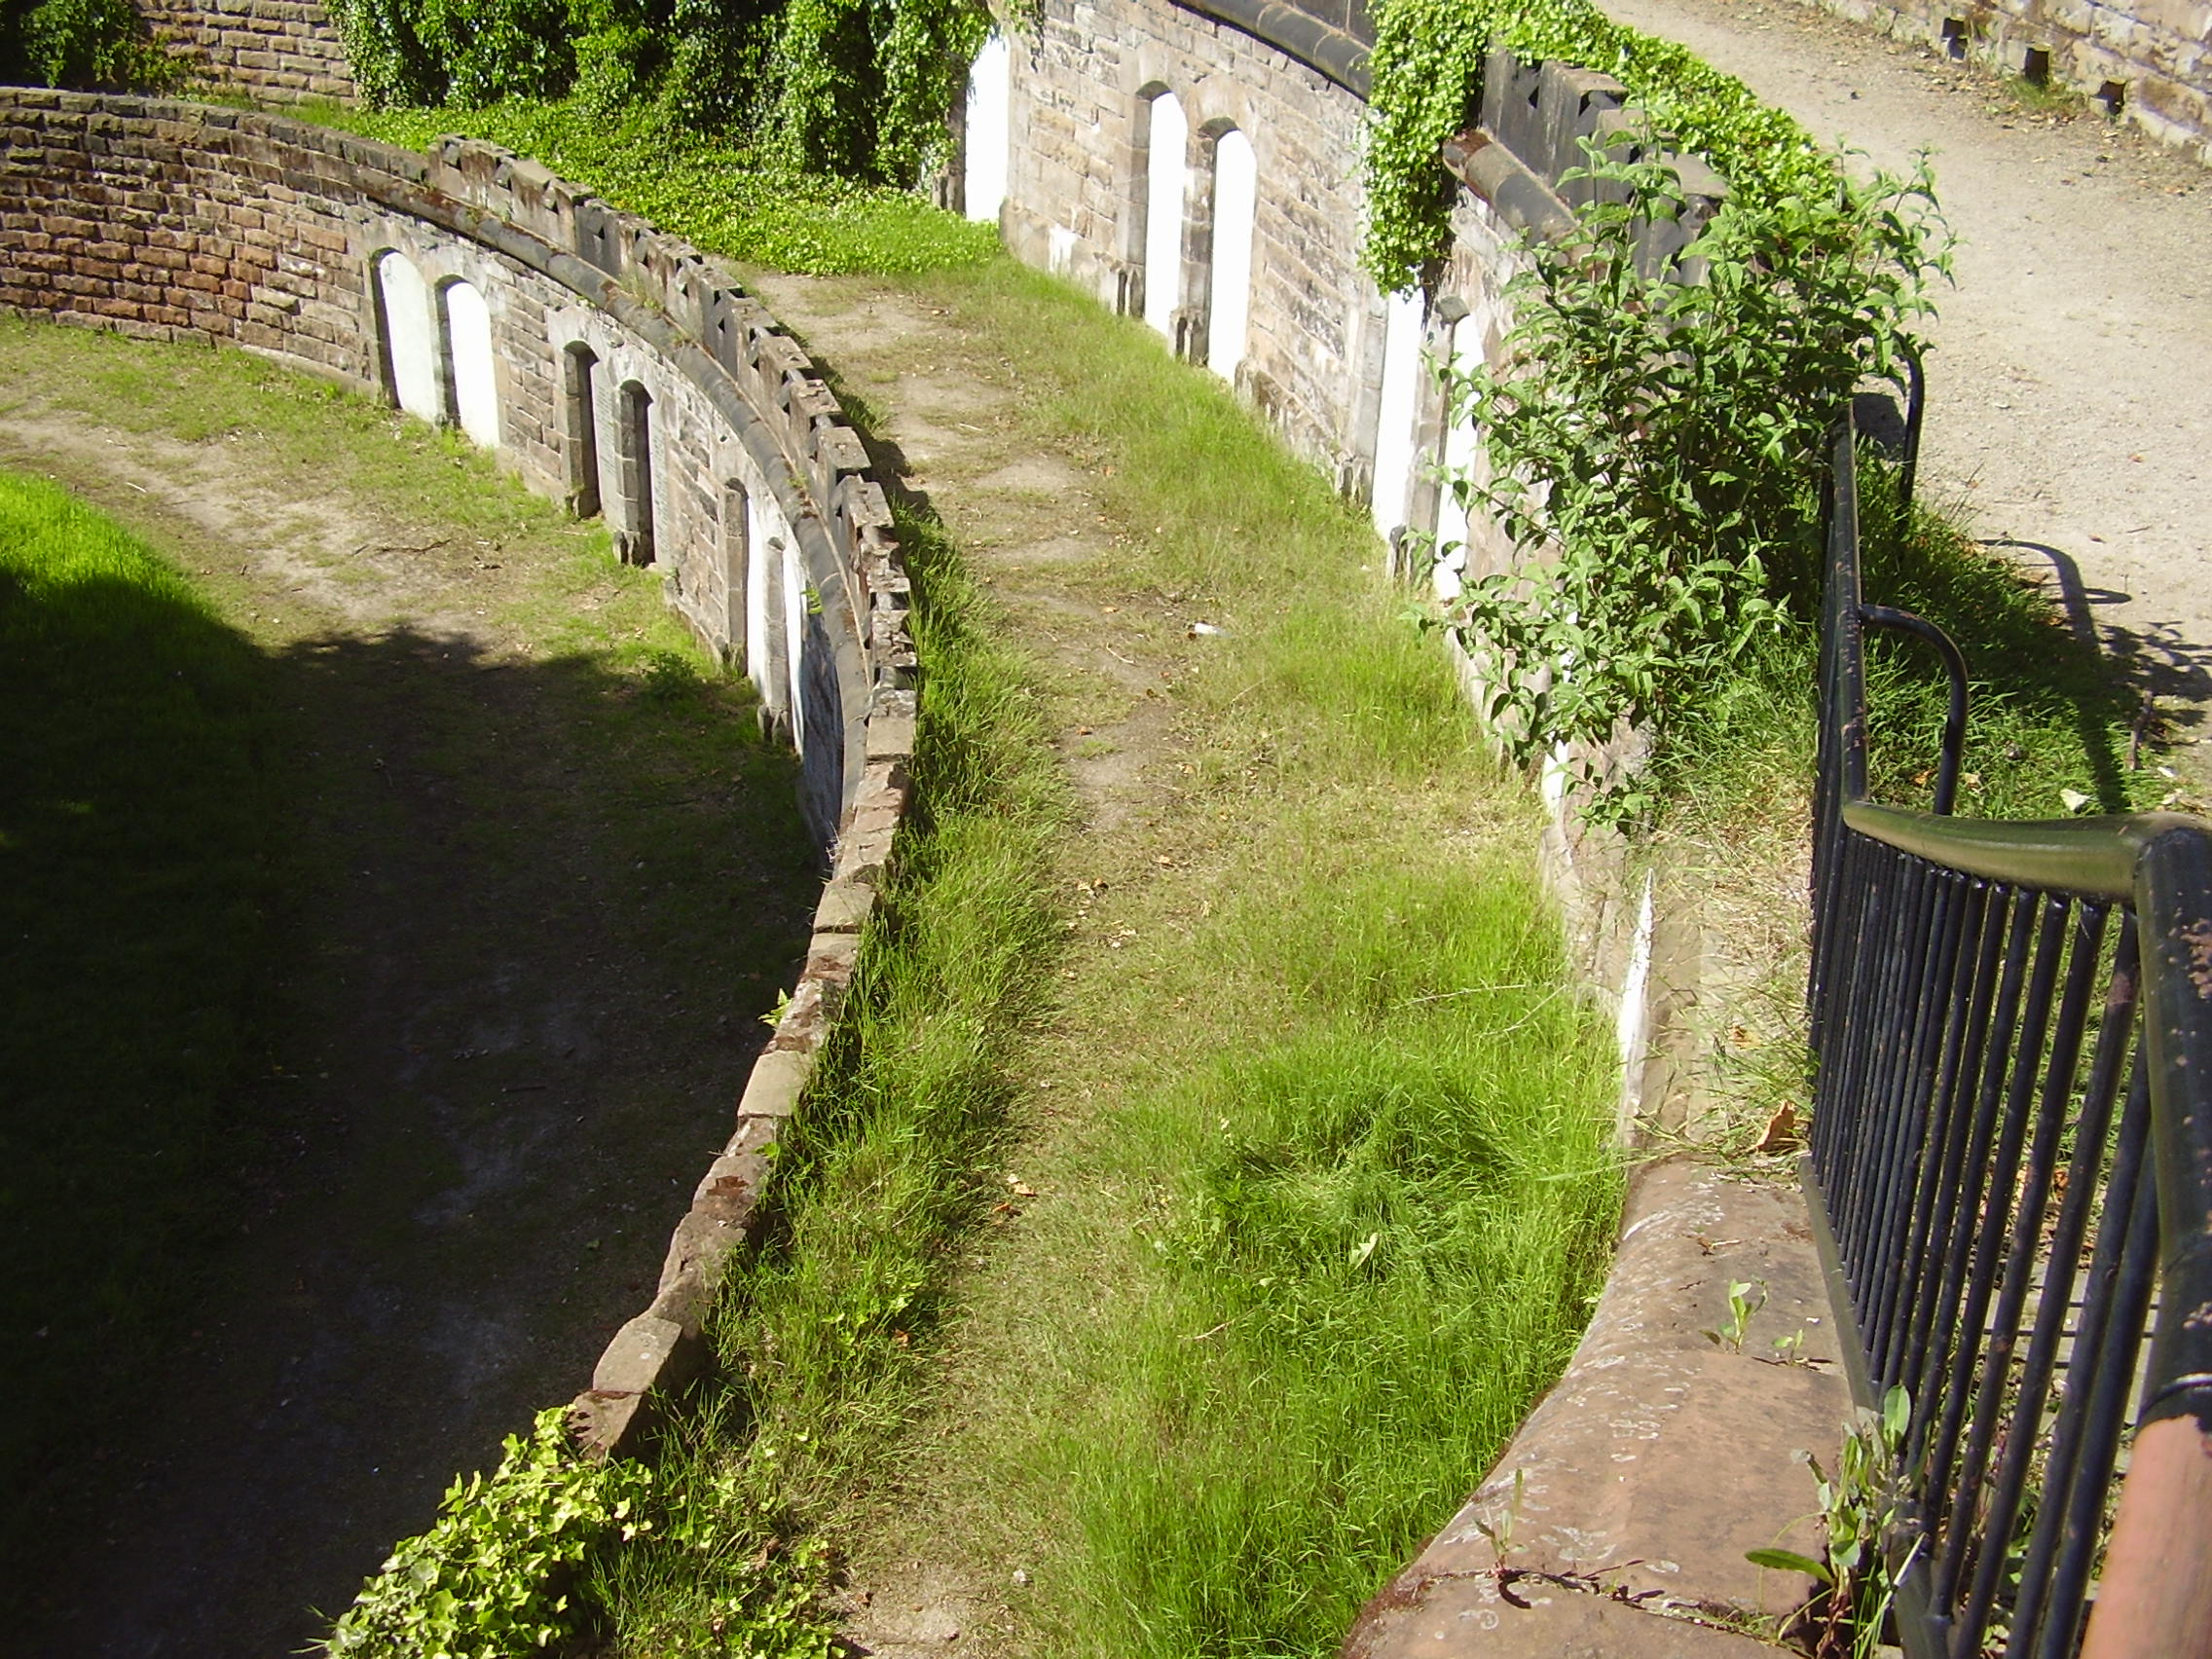 2008 Photograph looking down from inside mint cemetery Jewellery Quarter Birmingham